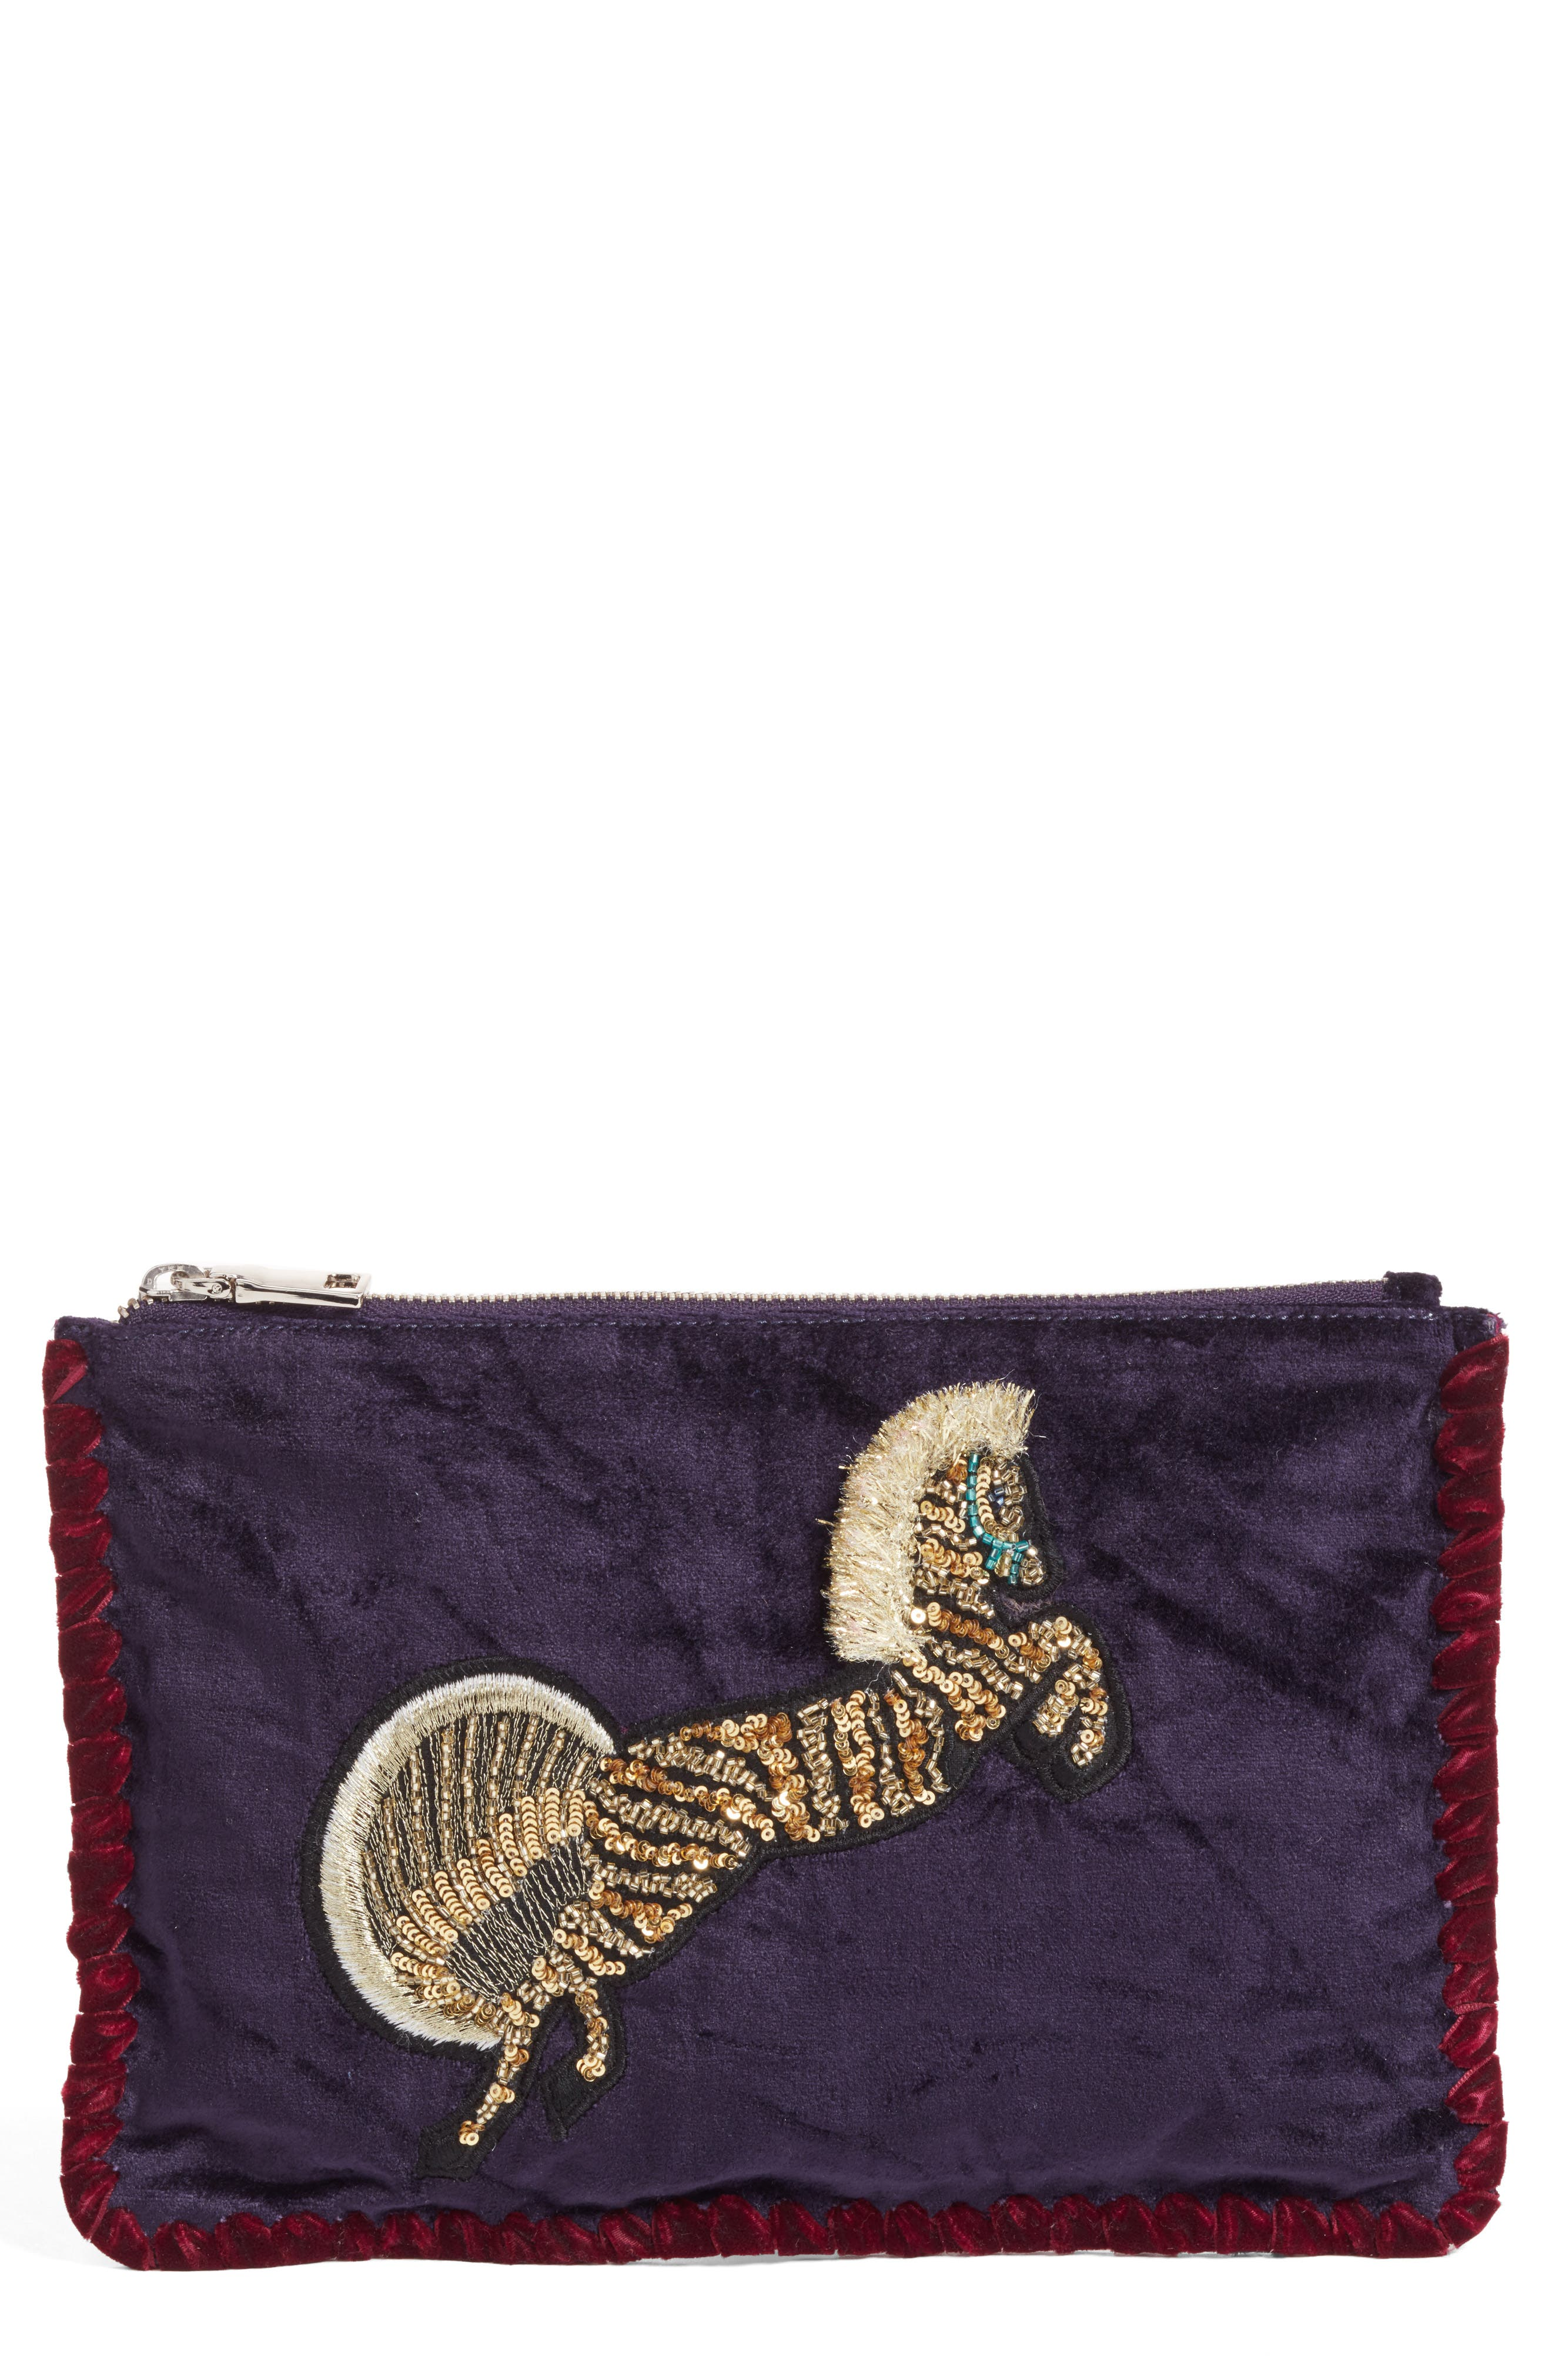 Embellished Clutch,                             Main thumbnail 1, color,                             Purple